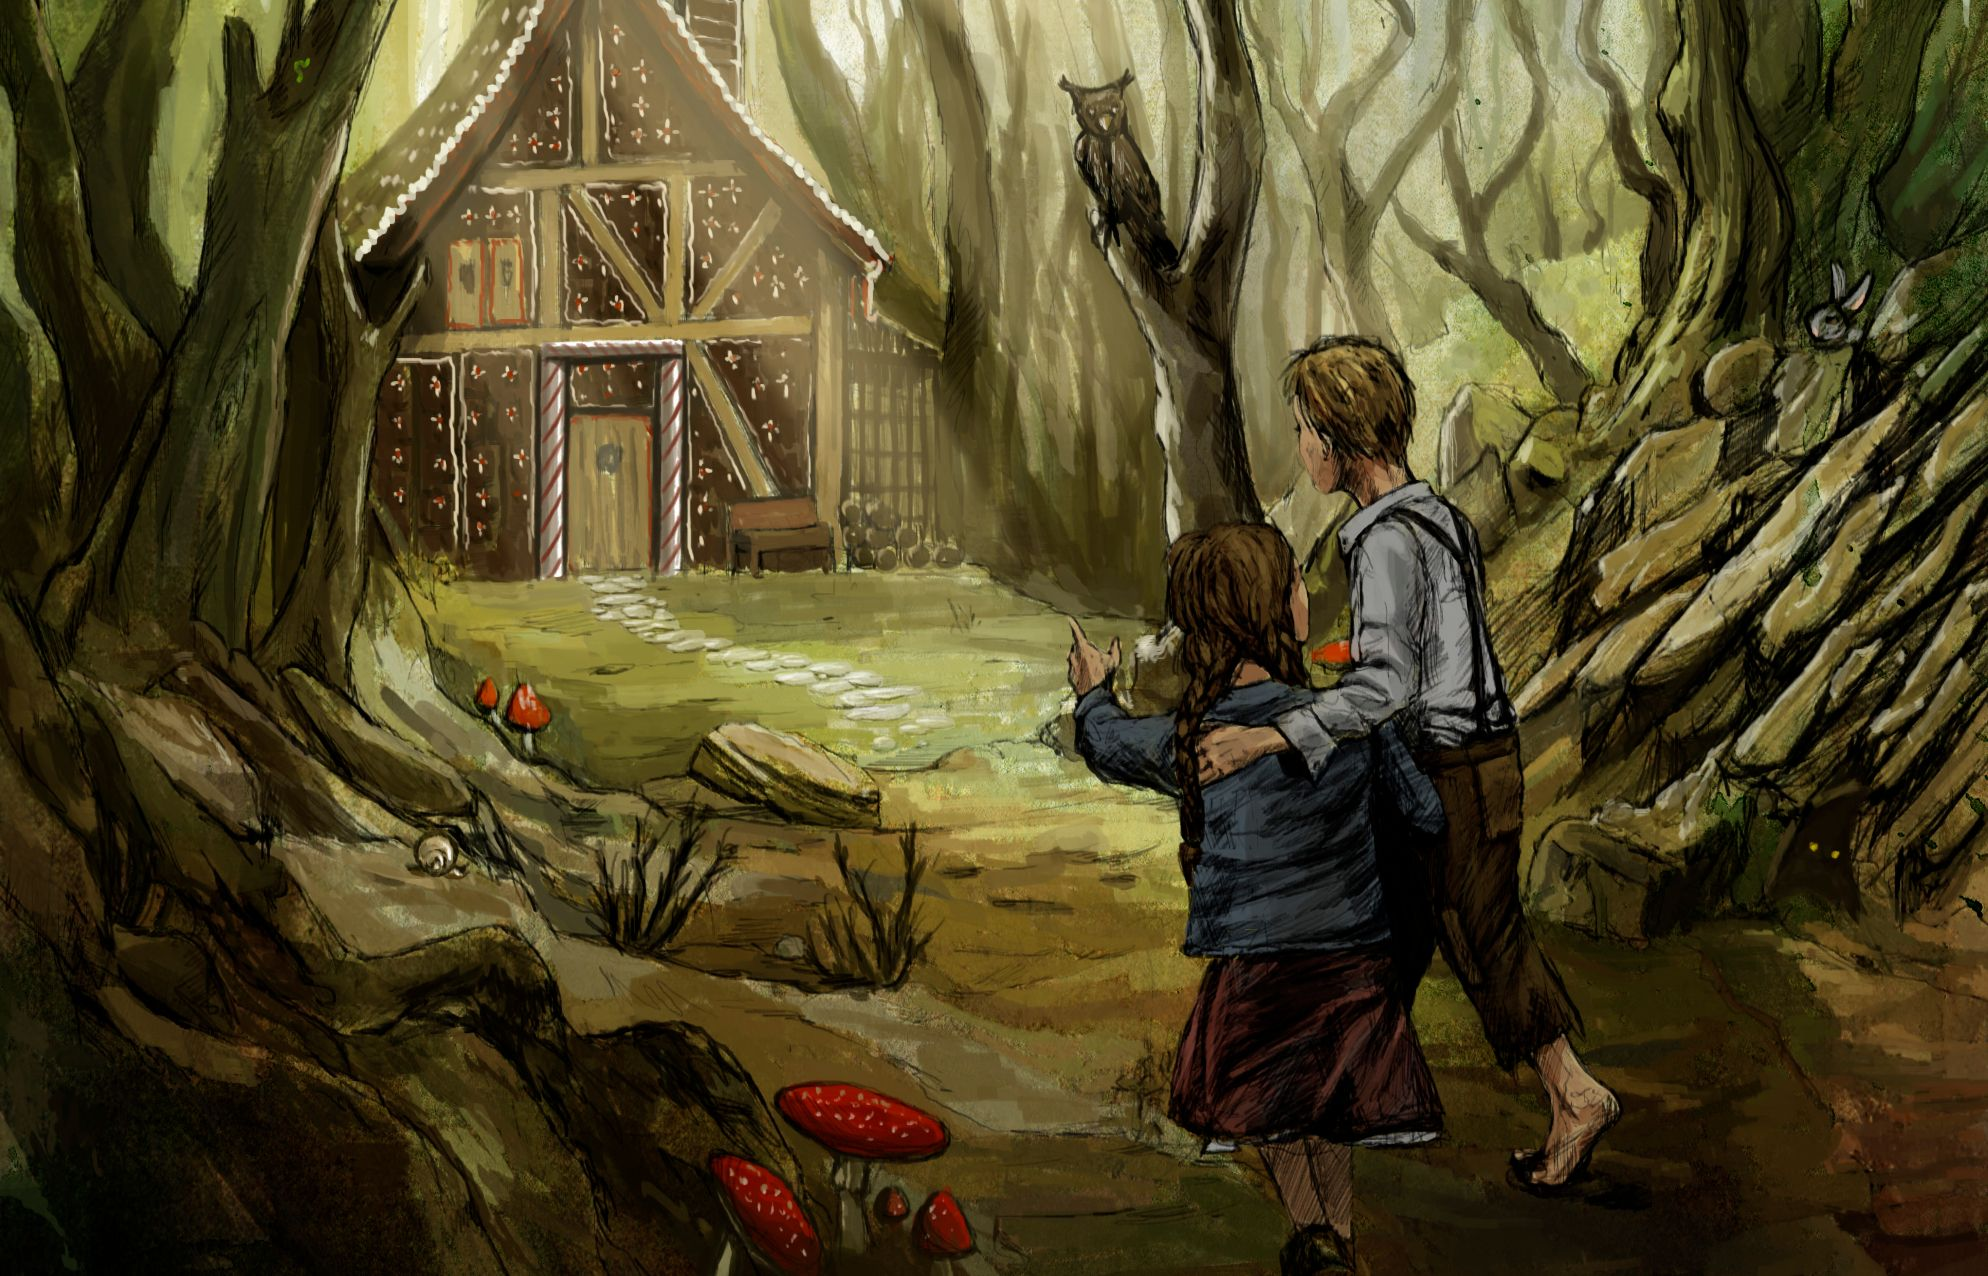 6. Hansel and Gretel